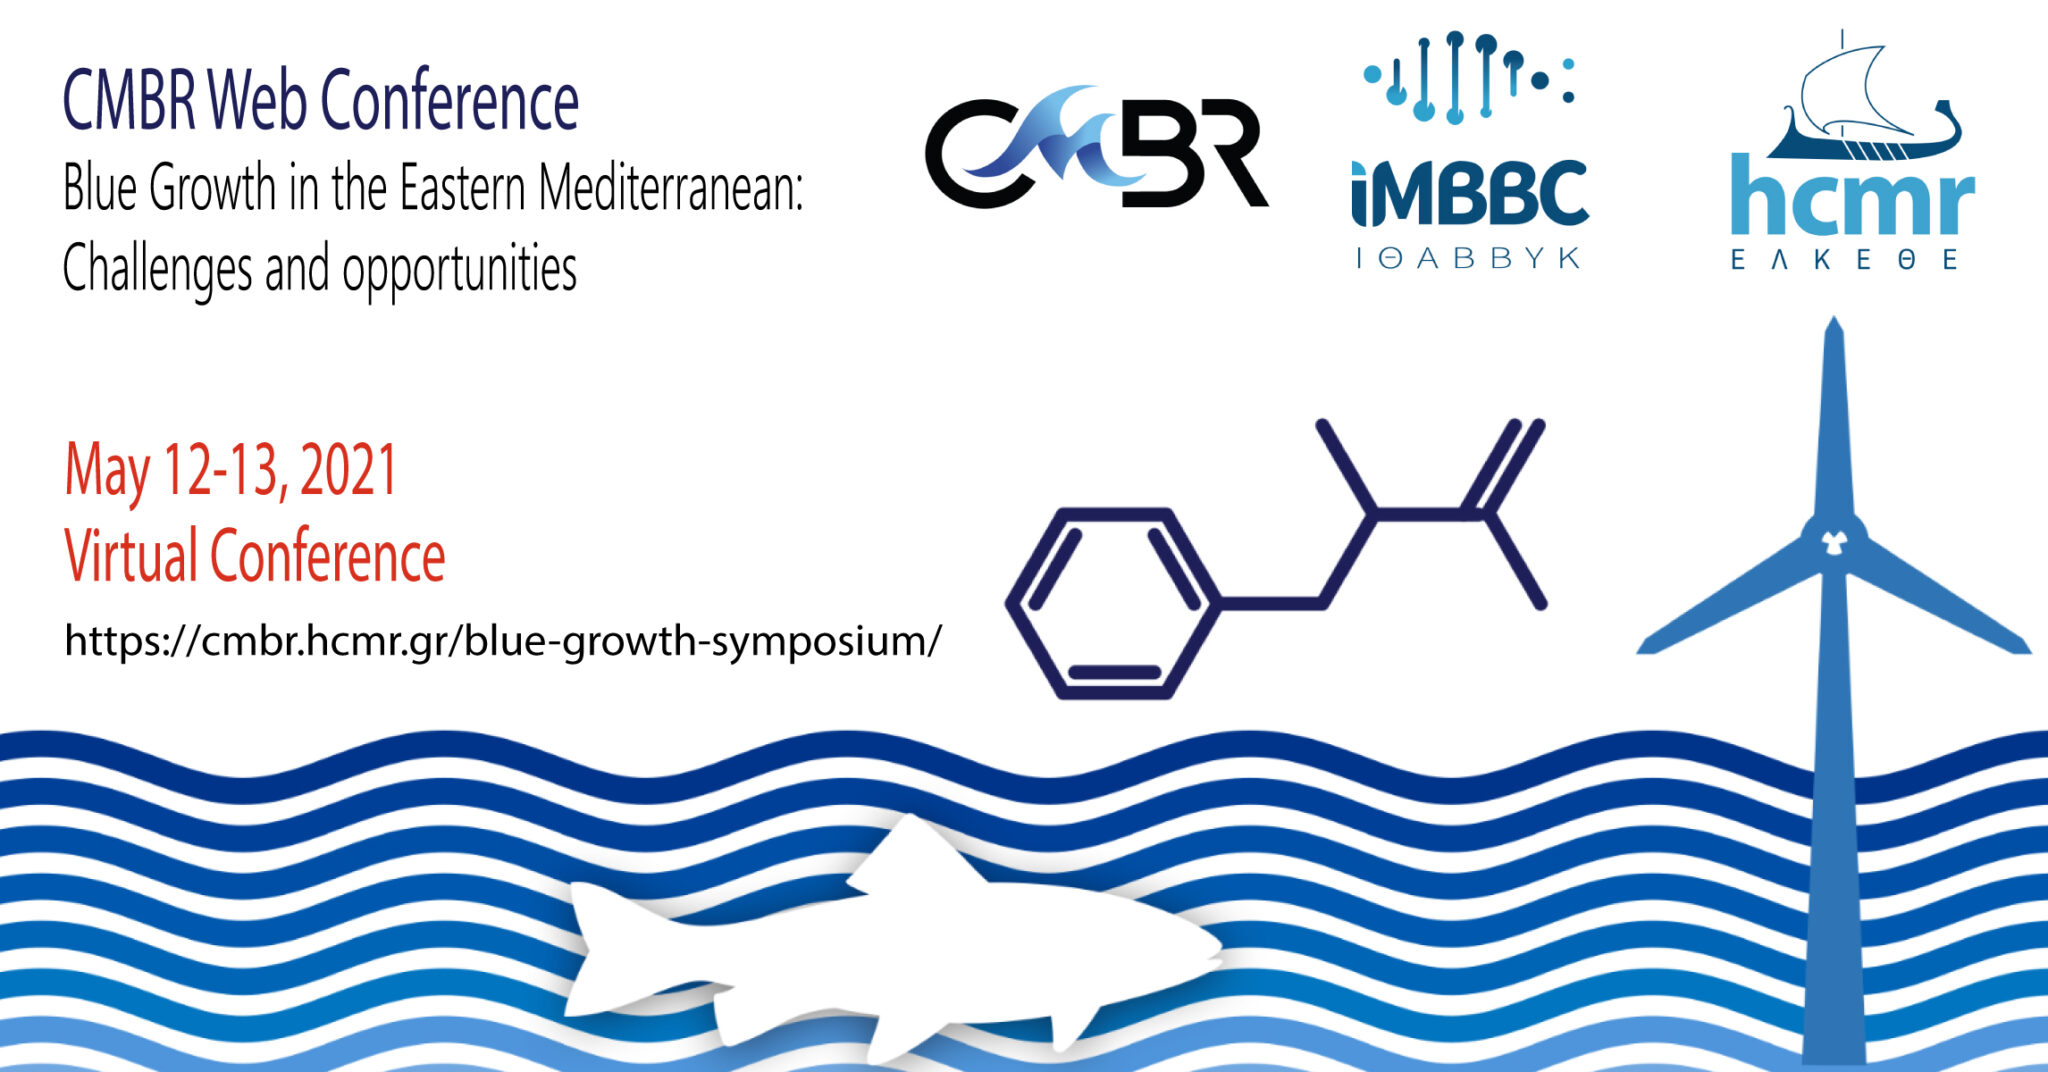 CMBR web conference on Blue Growth will be held online on May 12-13 https://cmbr.hcmr.gr/blue-growth-symposium/